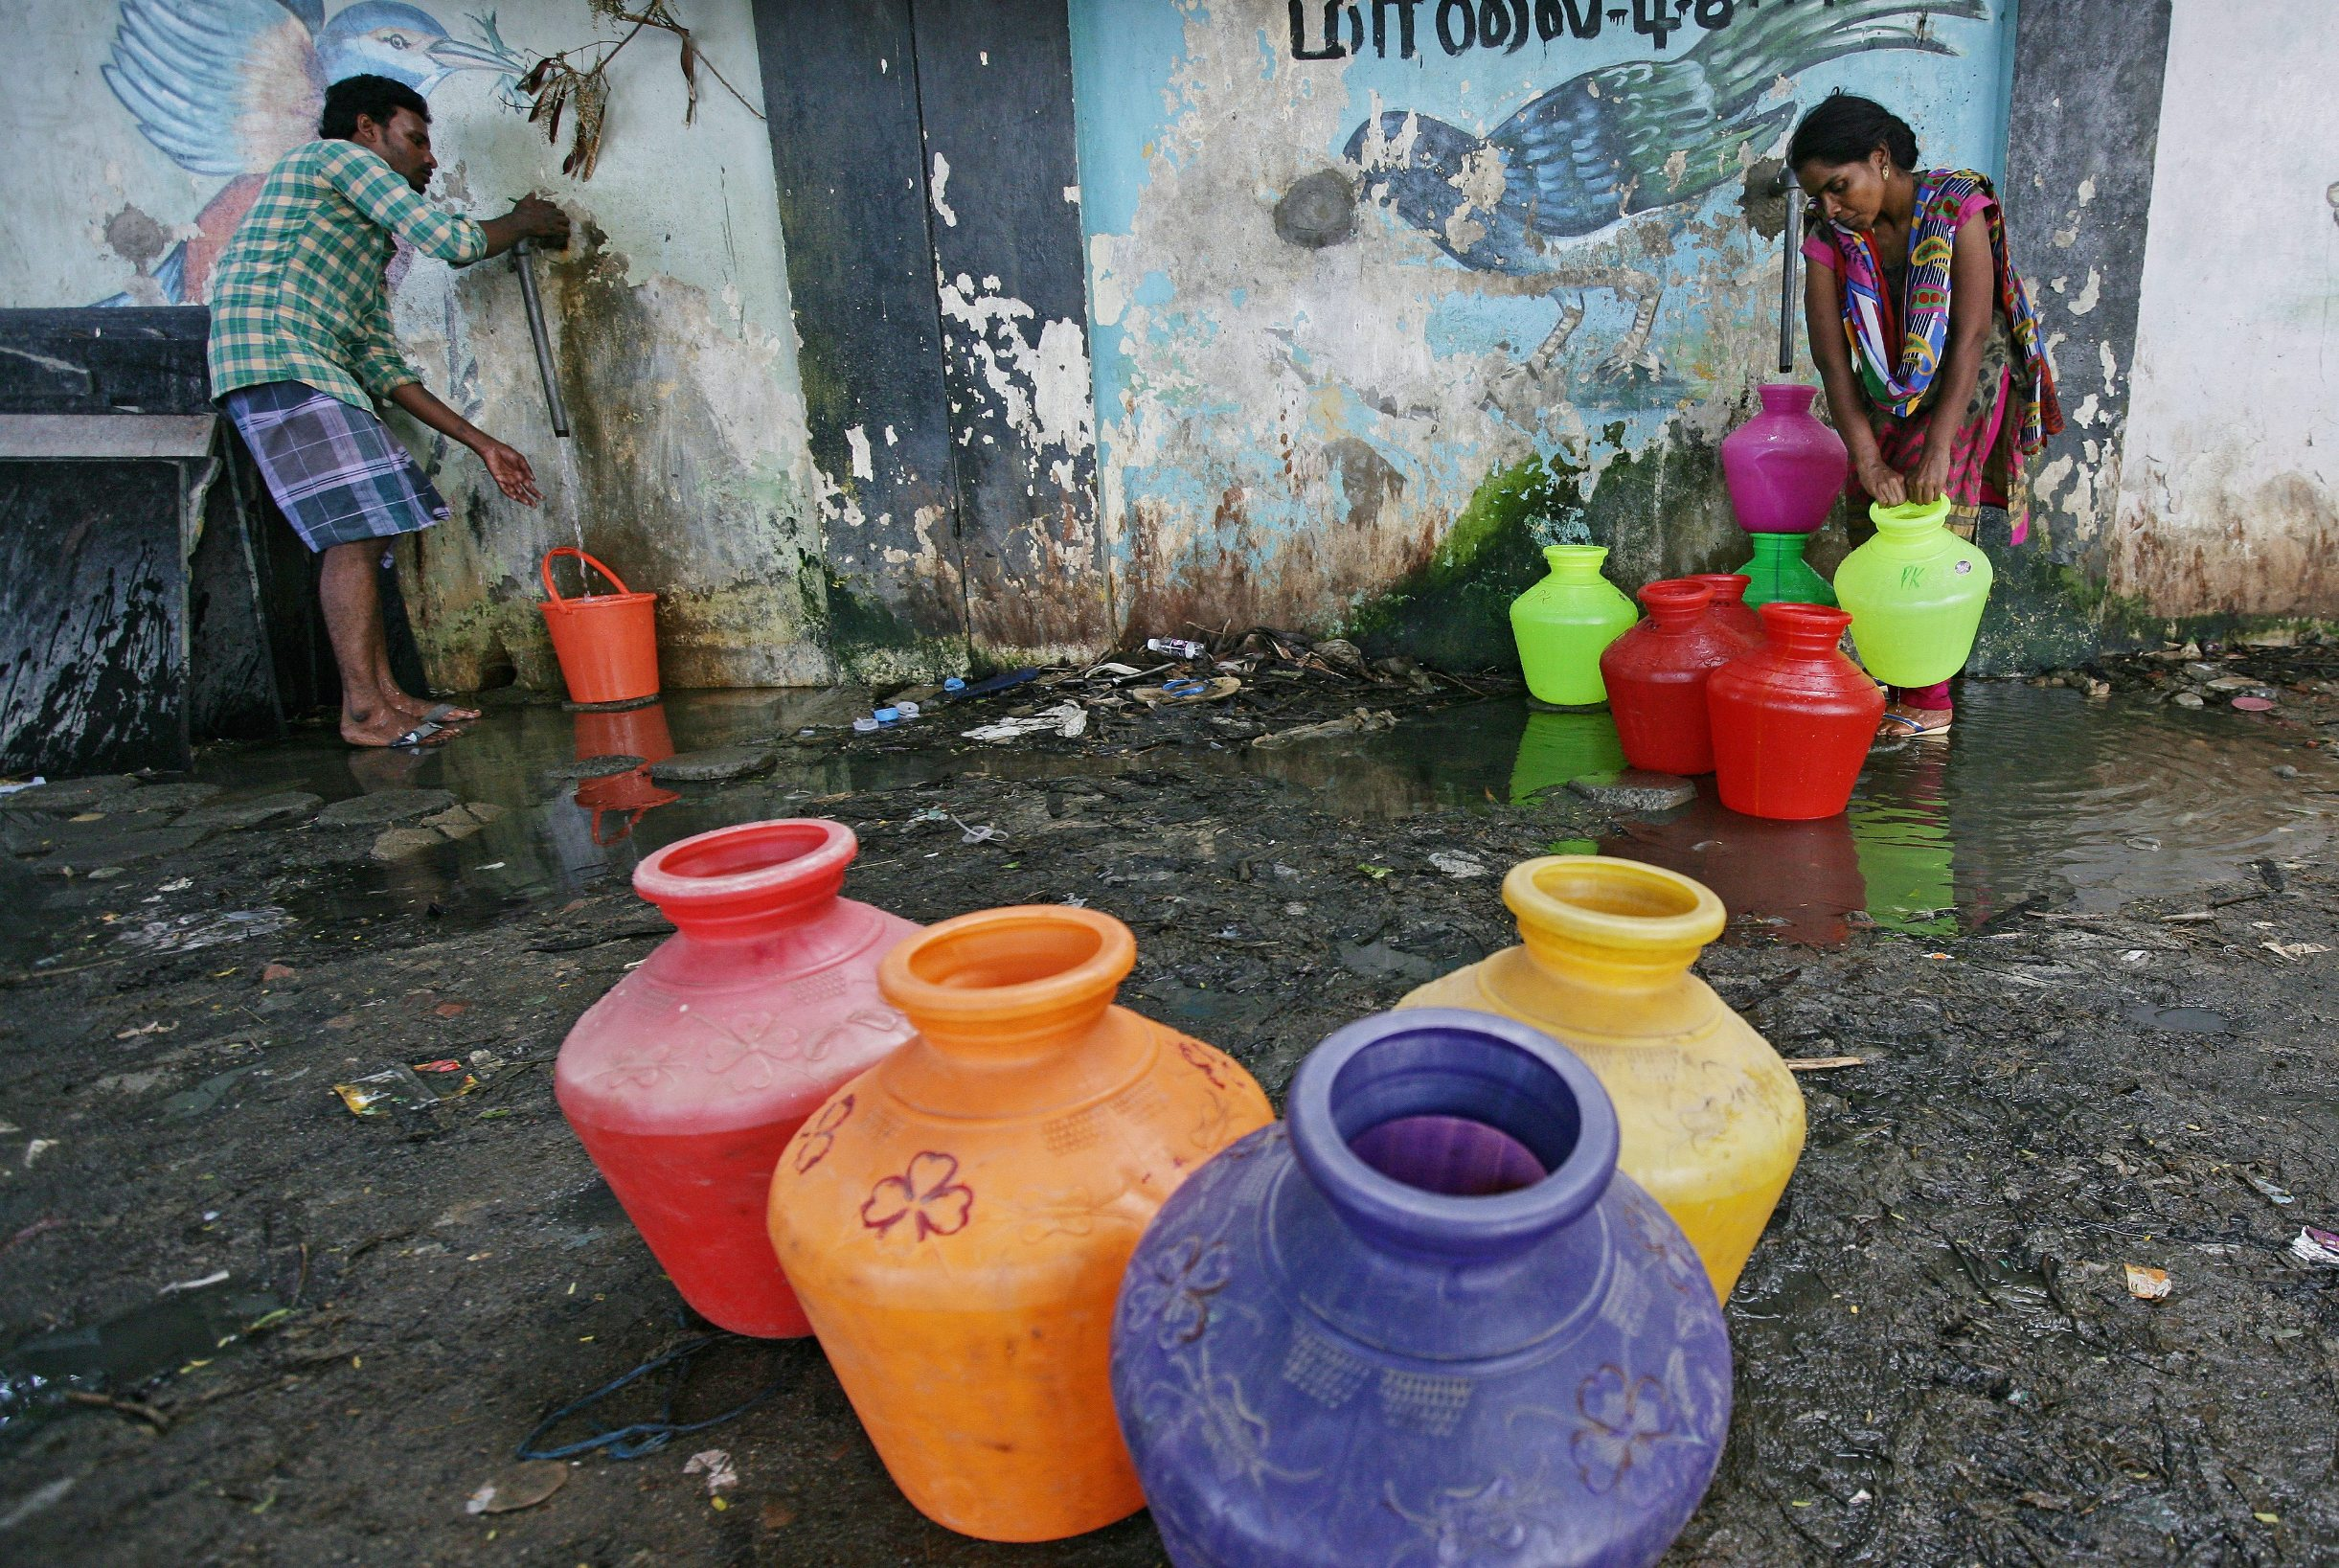 Residents fill their empty containers with water from a municipal tap in Chennai, India, June 28, 2019. REUTERS/P. Ravikumar